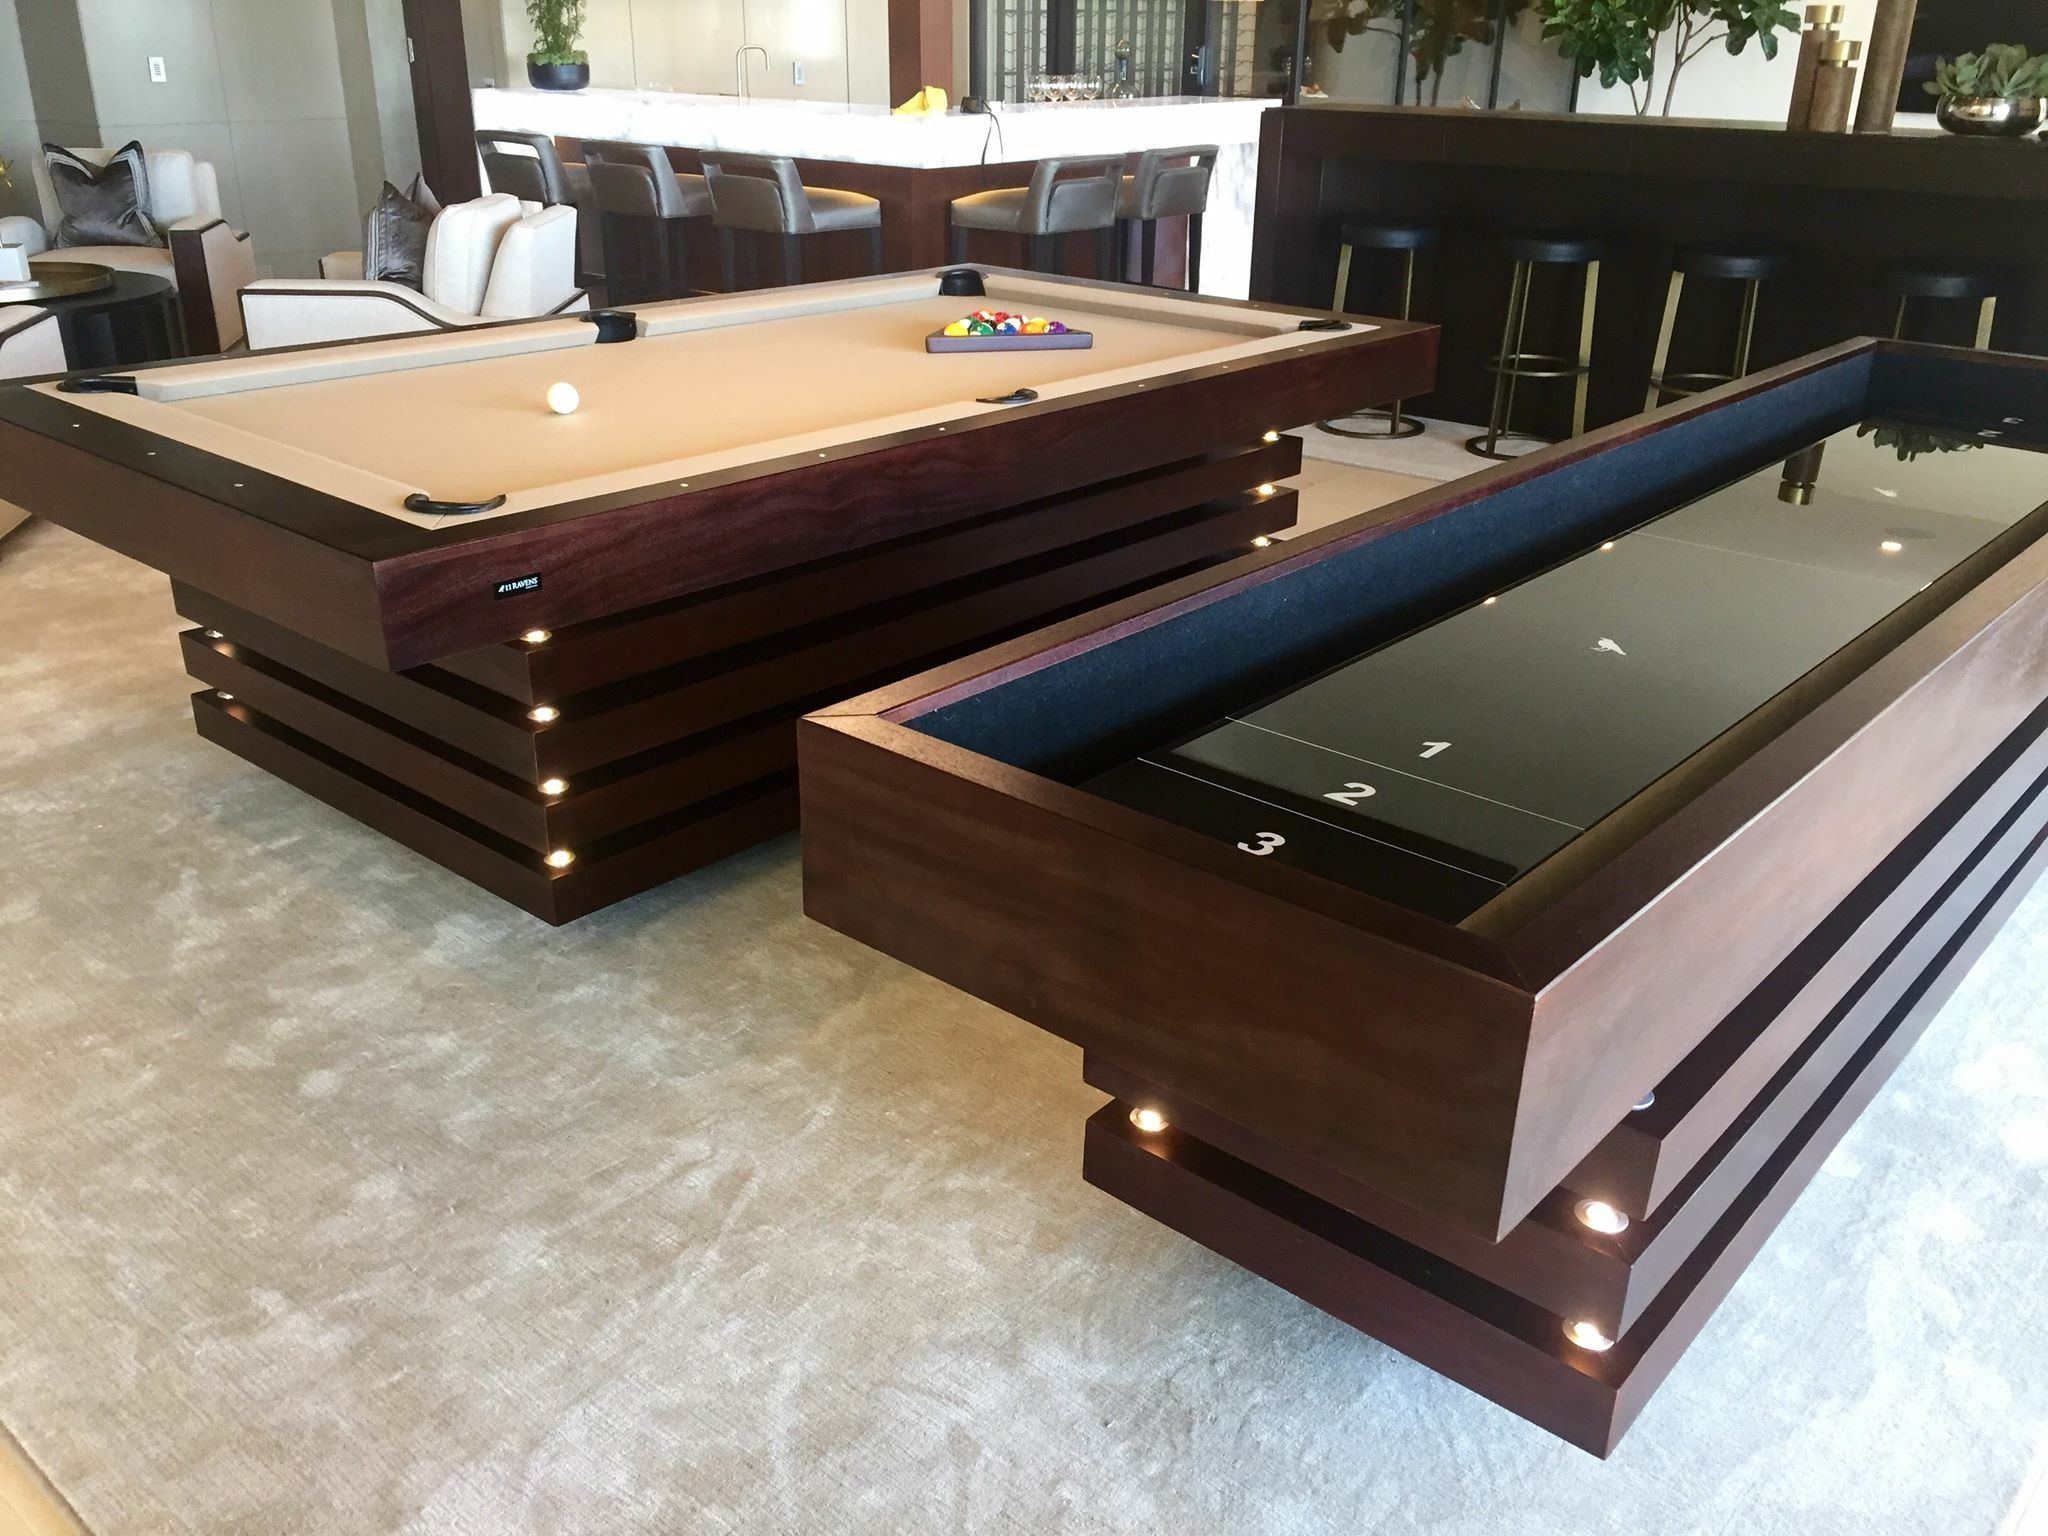 Arclight Billiards Table Luxury Modern Pool Tables The Most Exquisite Table Tennis Billiards Tables Modern Pool Table Billiard Table Pool Table